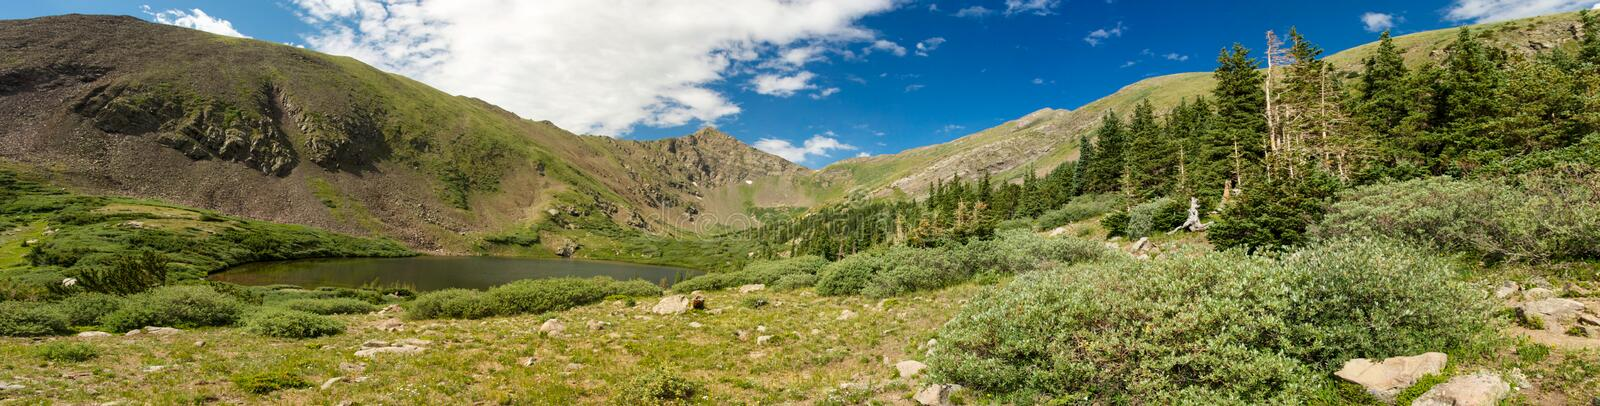 Rocky Mountain Panorama royalty free stock images